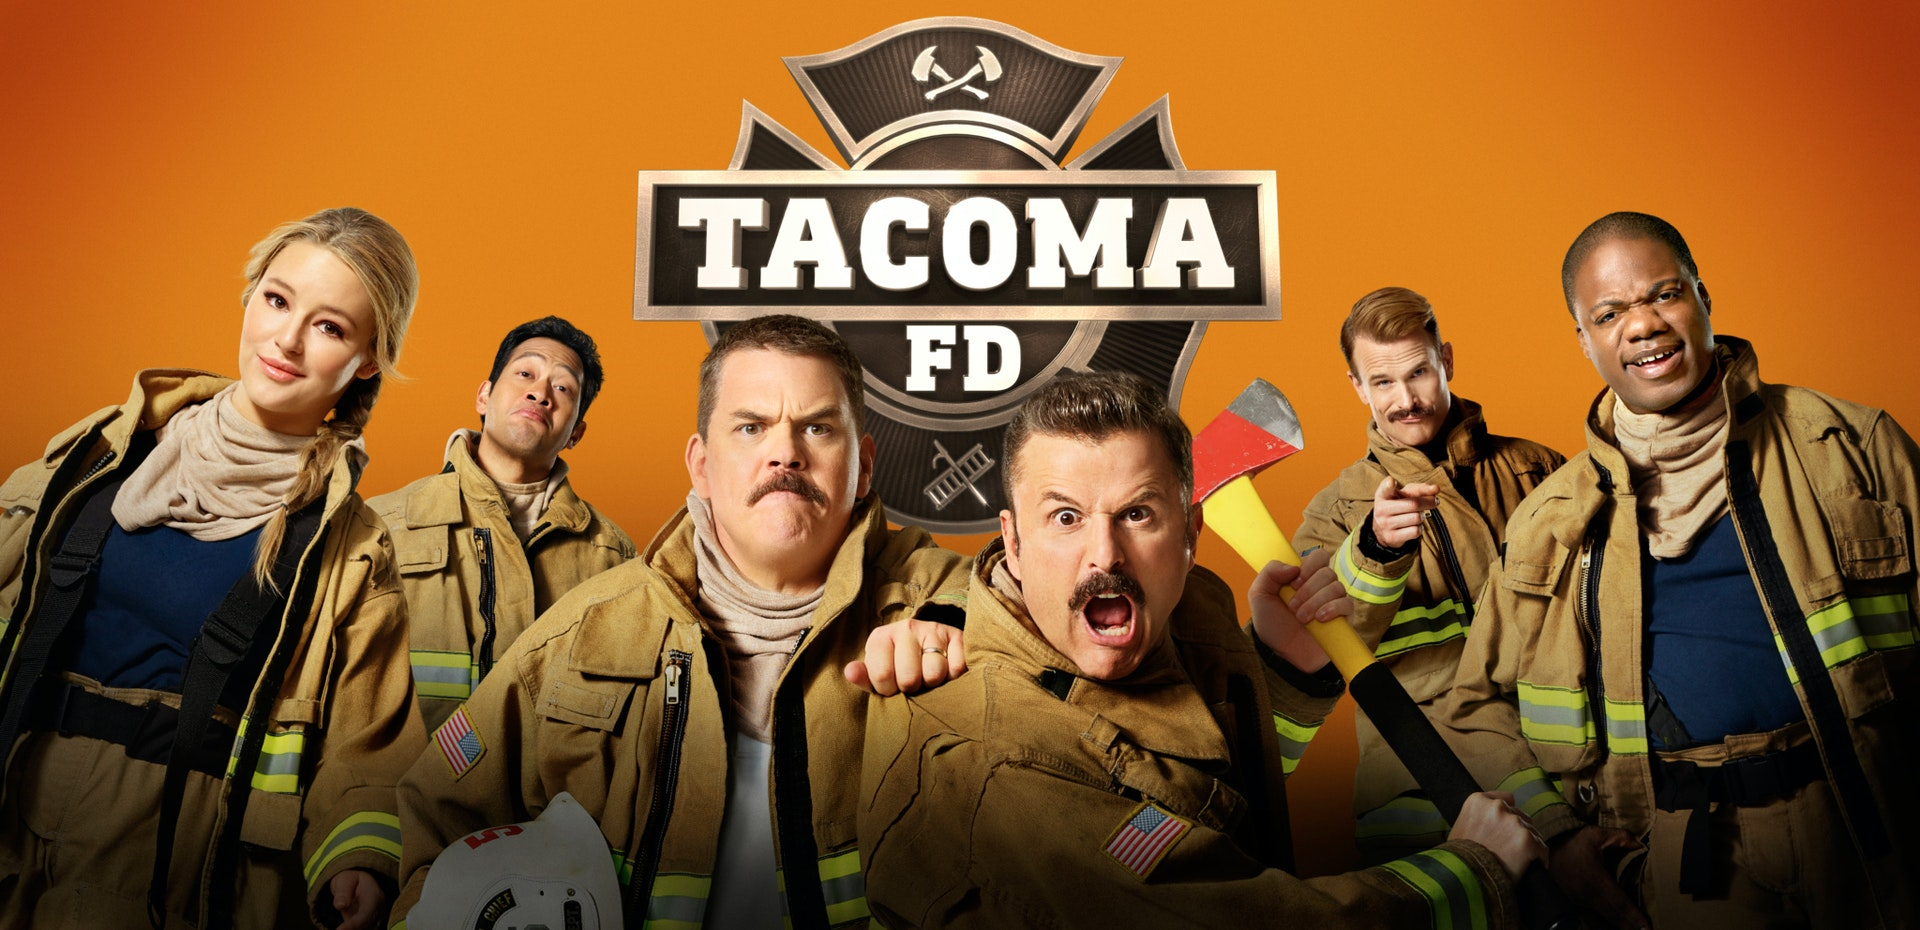 Tacoma FD Season 3 Release Date And All Future Updates Here - Finance Rewind